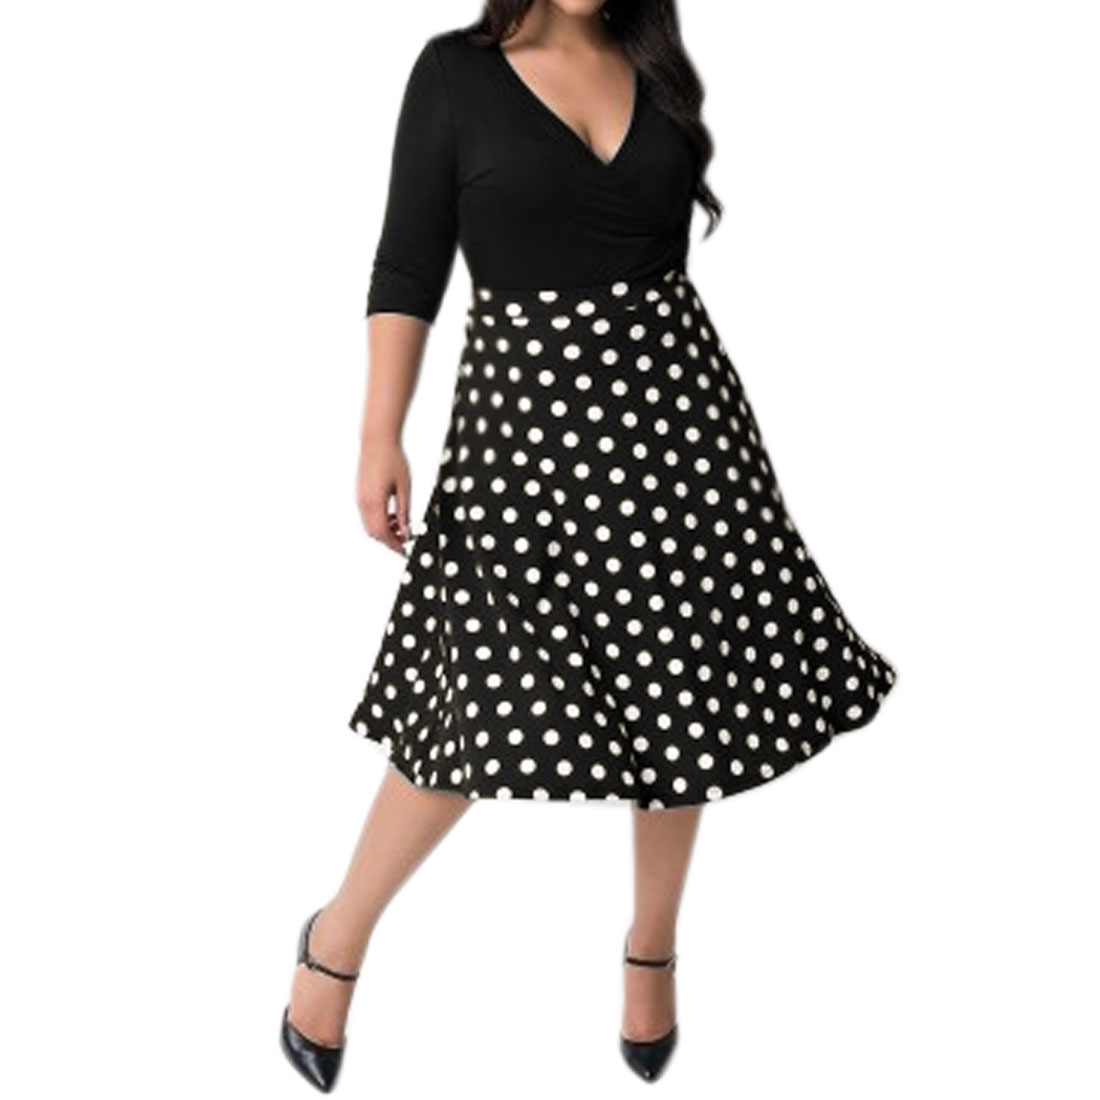 Lady Crossover V Neck 3/4 Sleeves Dots Paneled A Line Dress Black XL